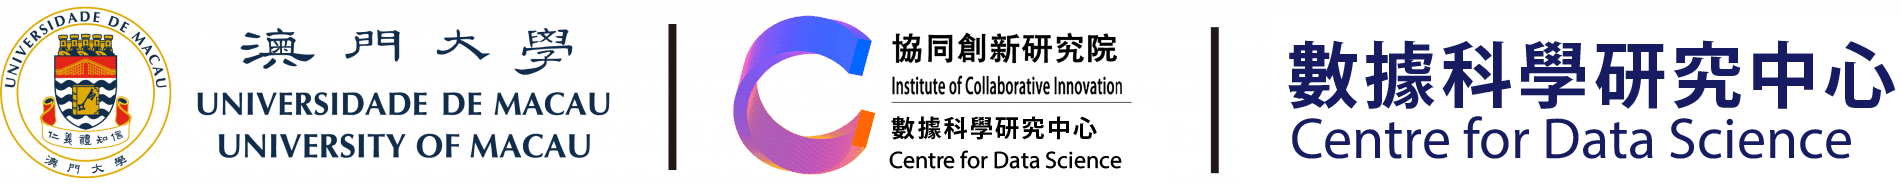 University of Macau | Centre for Data Science Logo